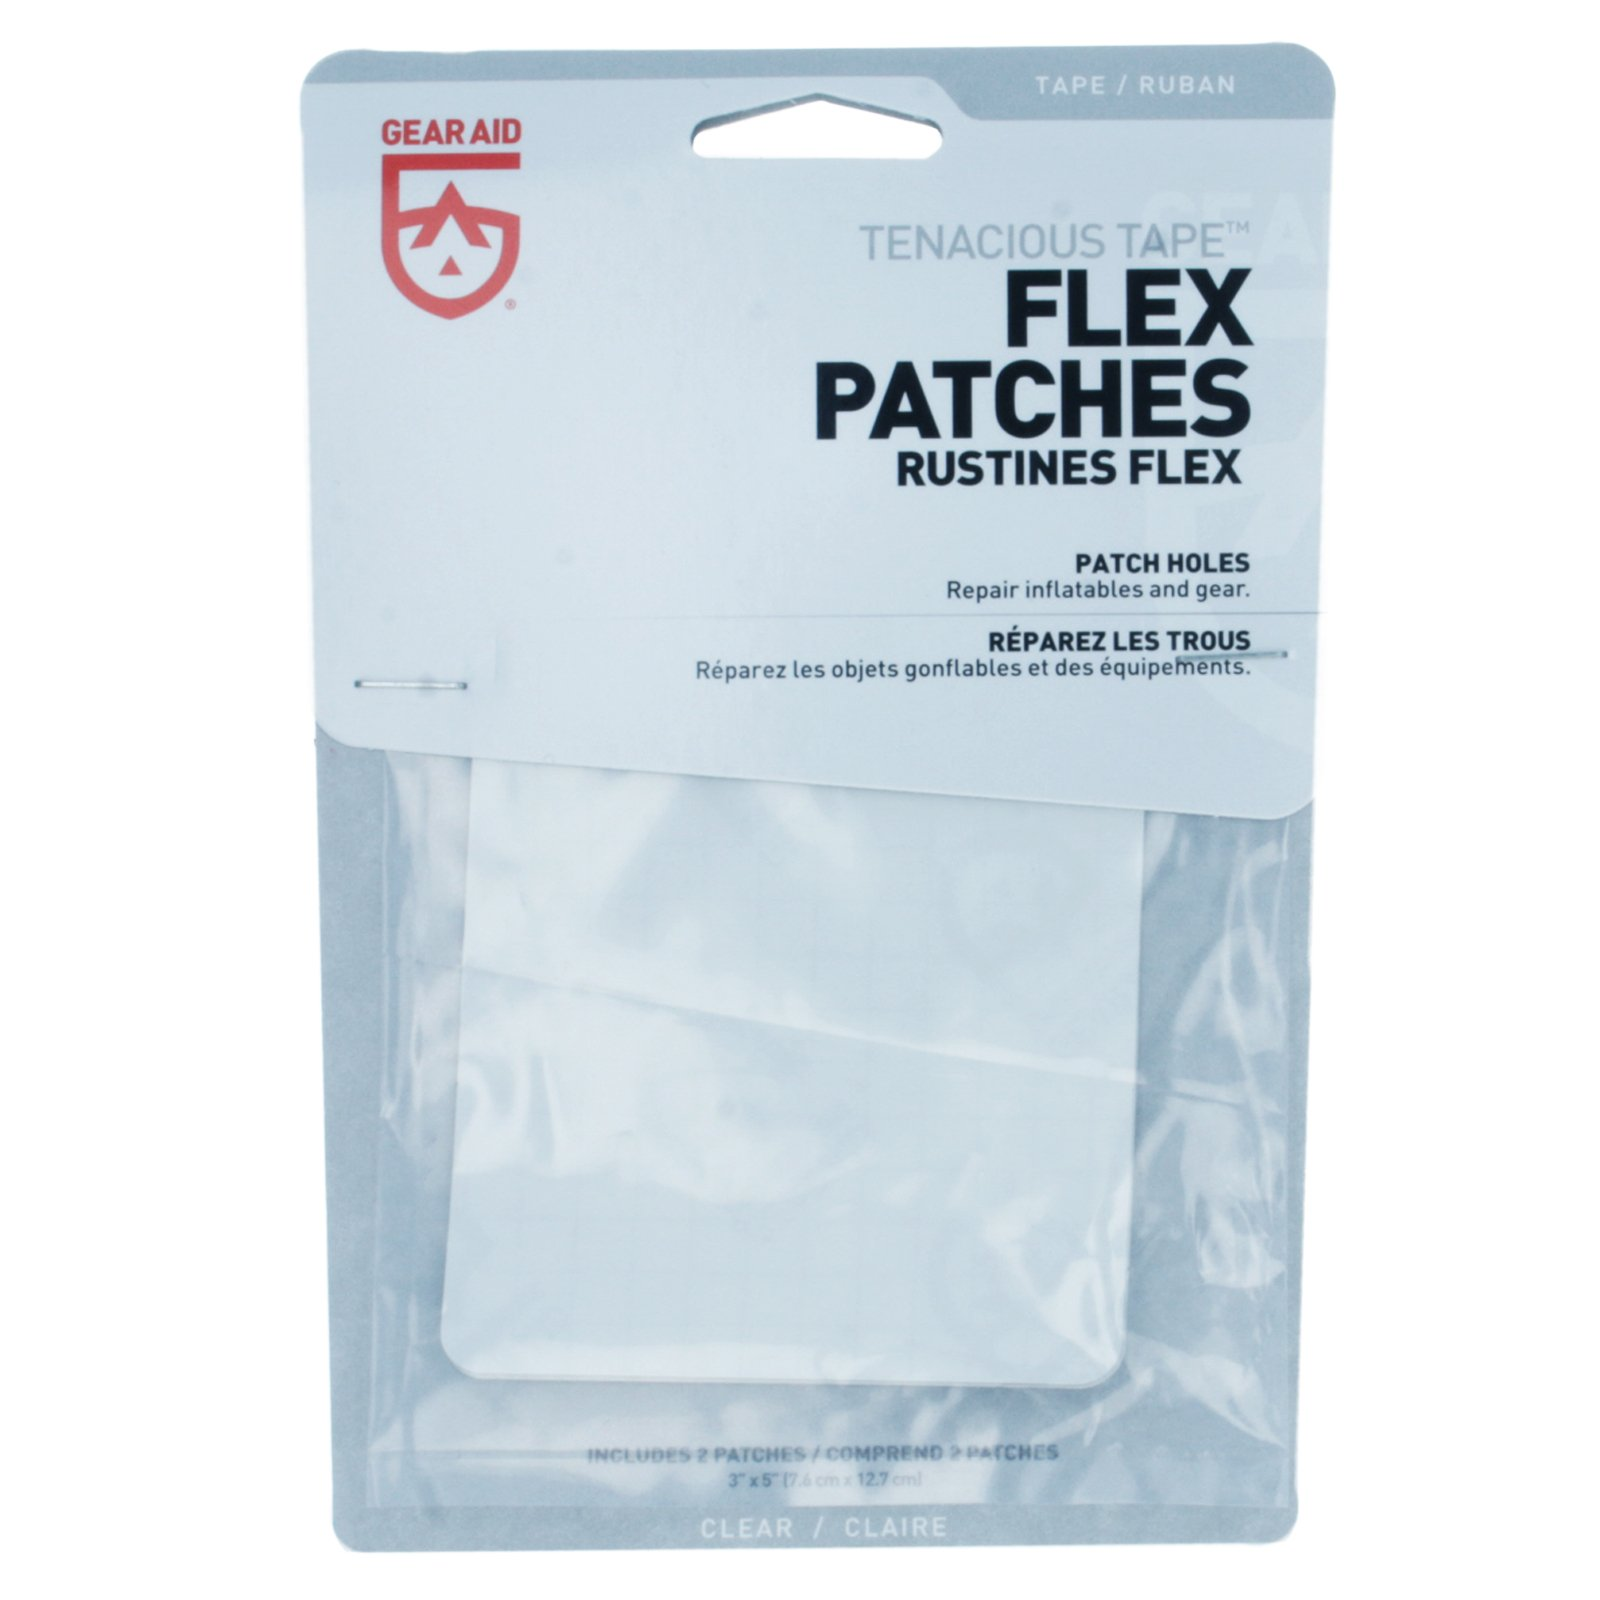 Gear Aid McNett Tenacious Tape Max Flex Repair Patches Permanent (3-Pack)